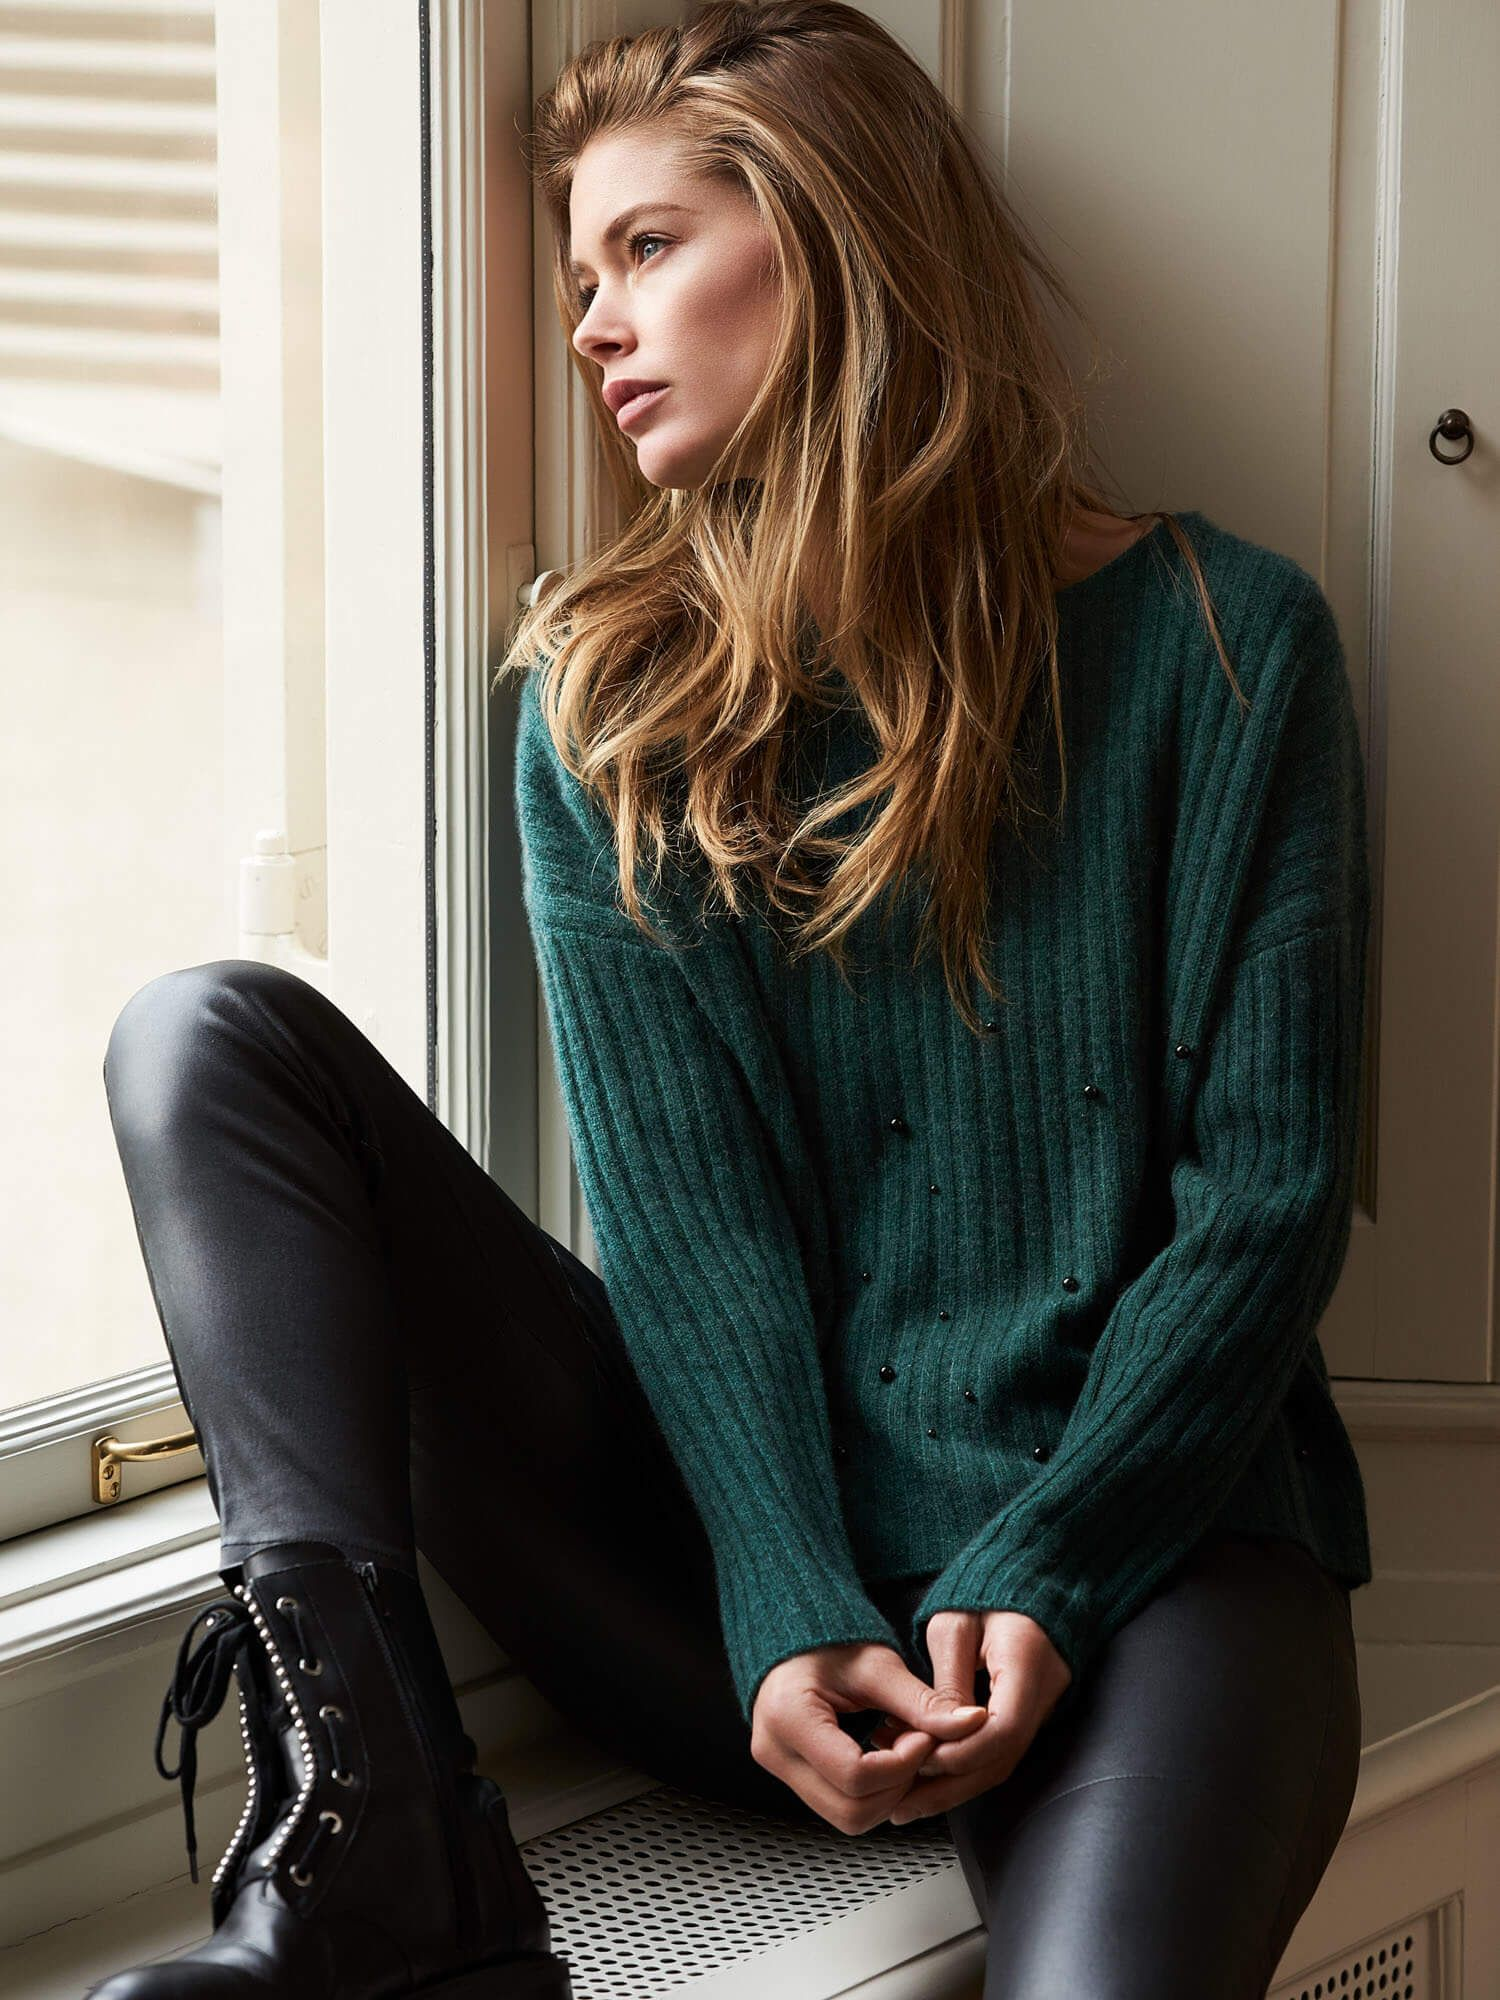 39abc3371a7 Doutzen Kroes for REPEAT cashmere